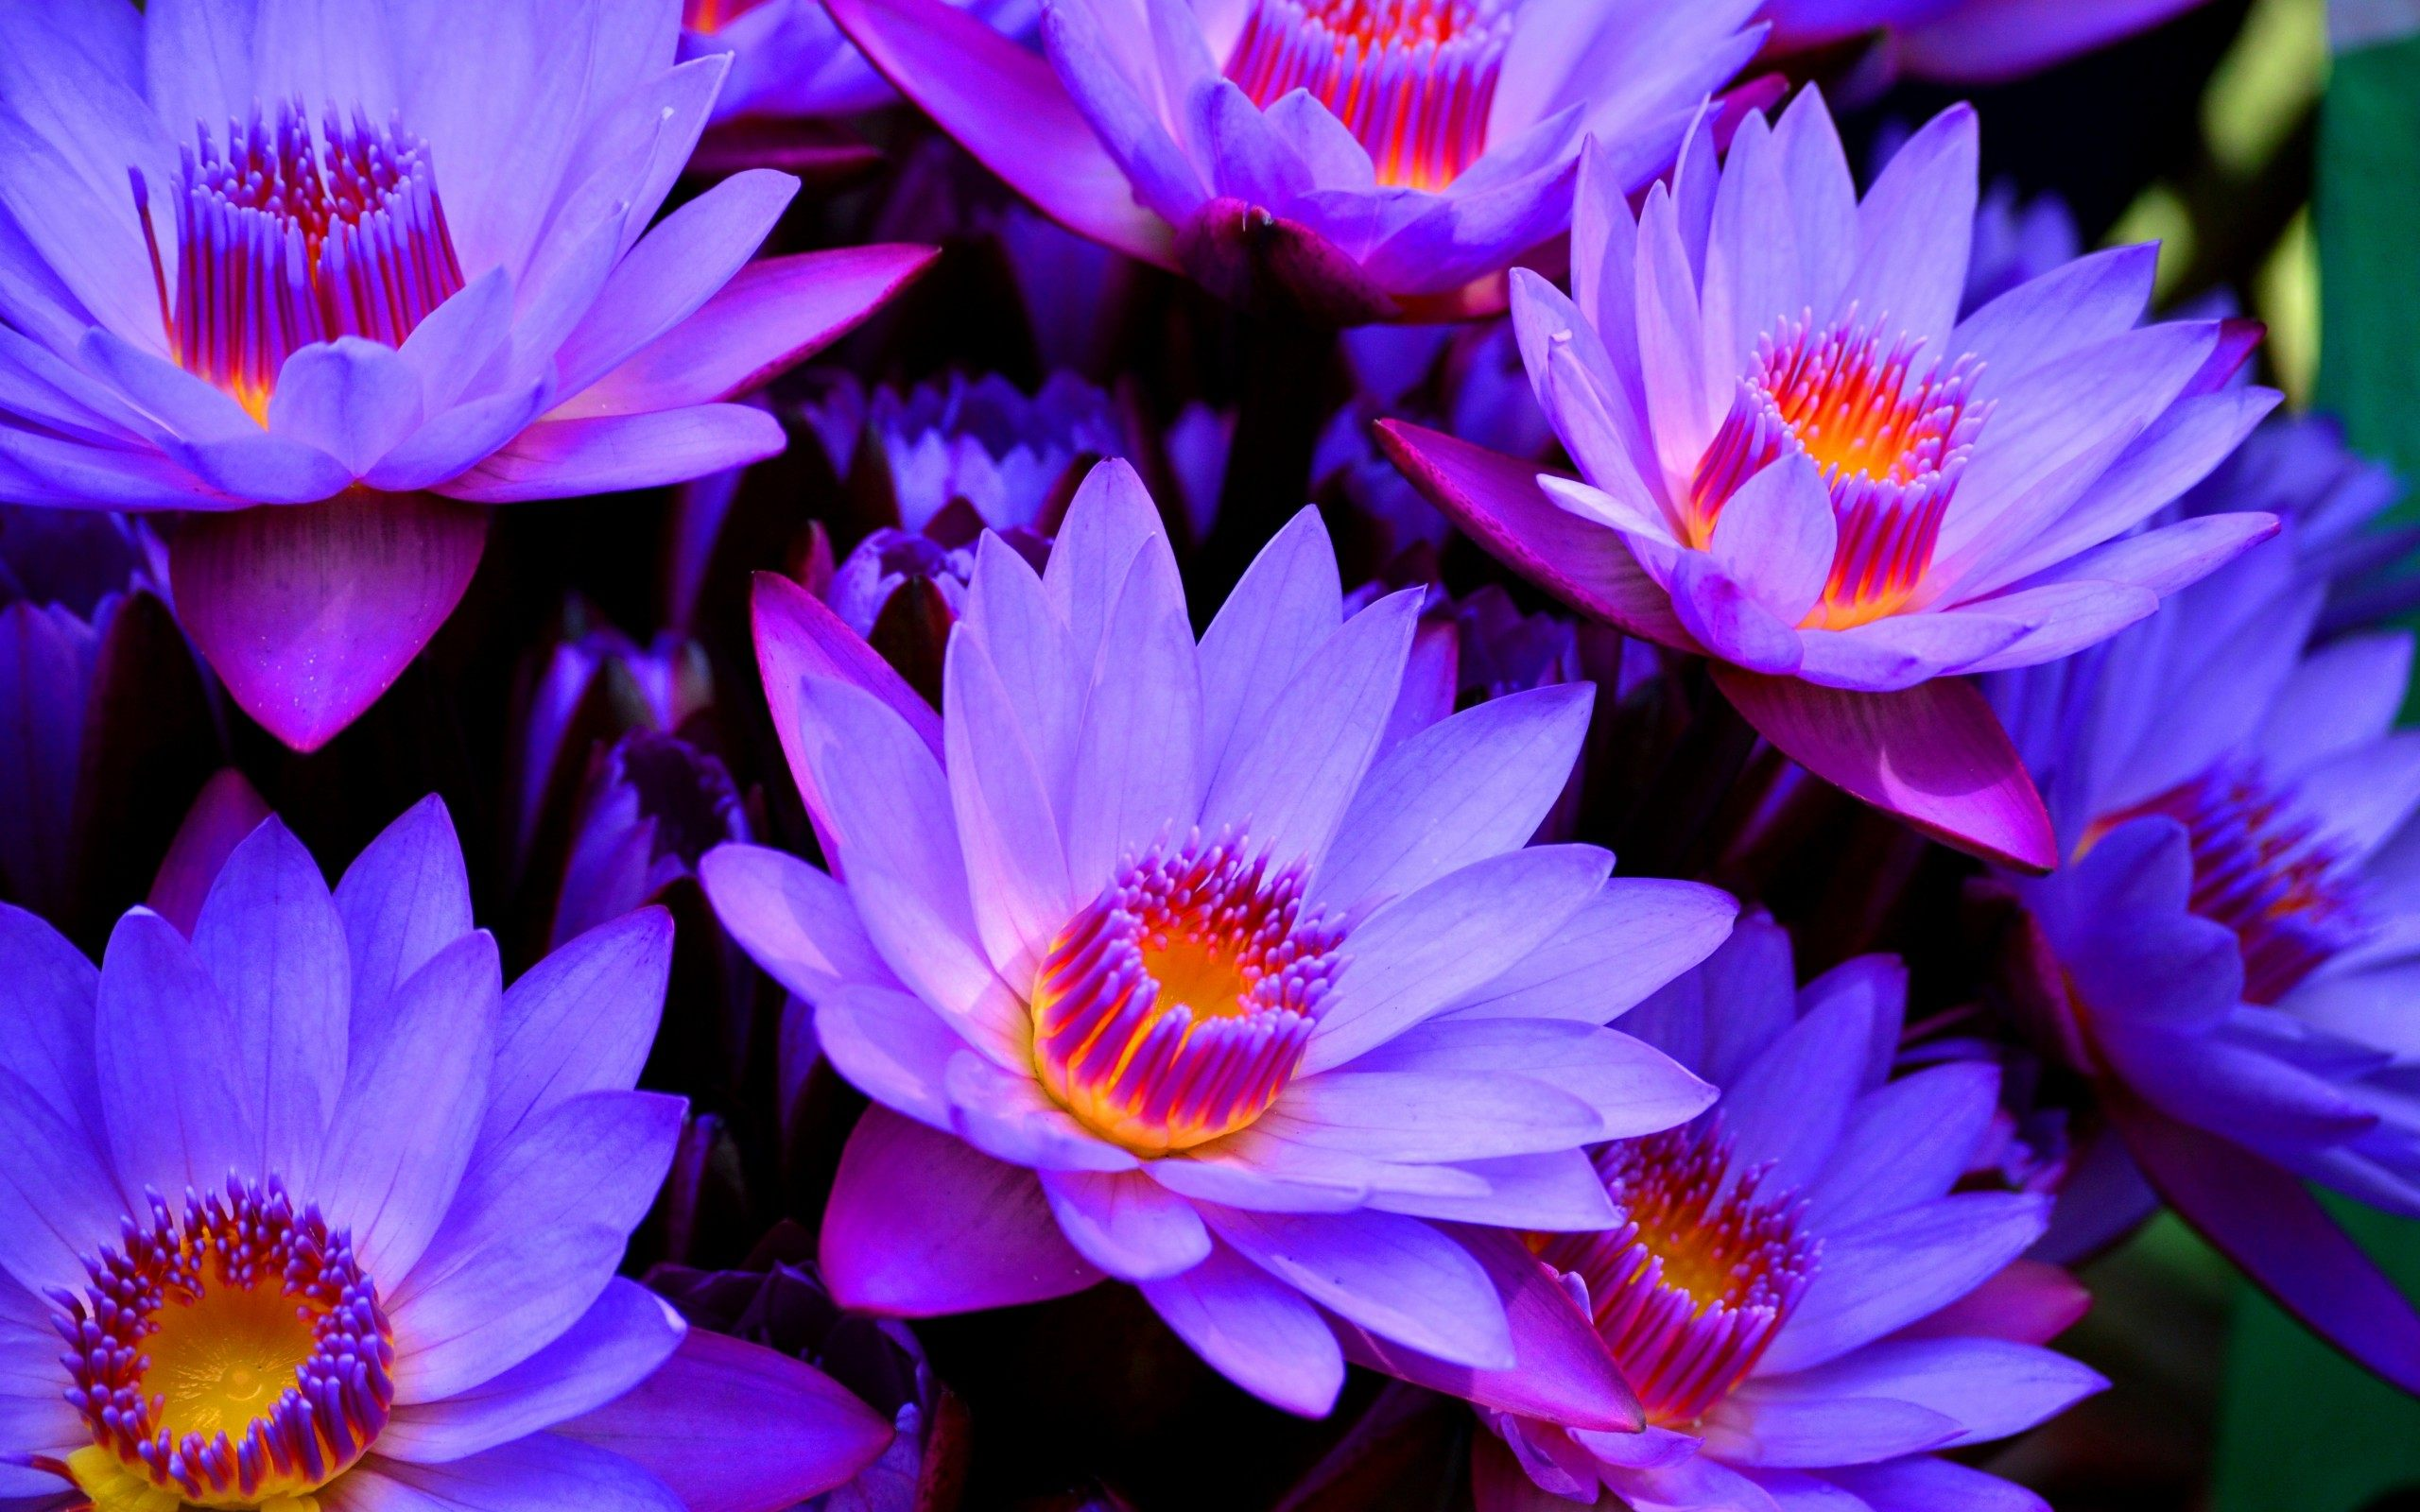 Lotus flower history - Purple Lotus Flower Wallpaper Photo Jpg